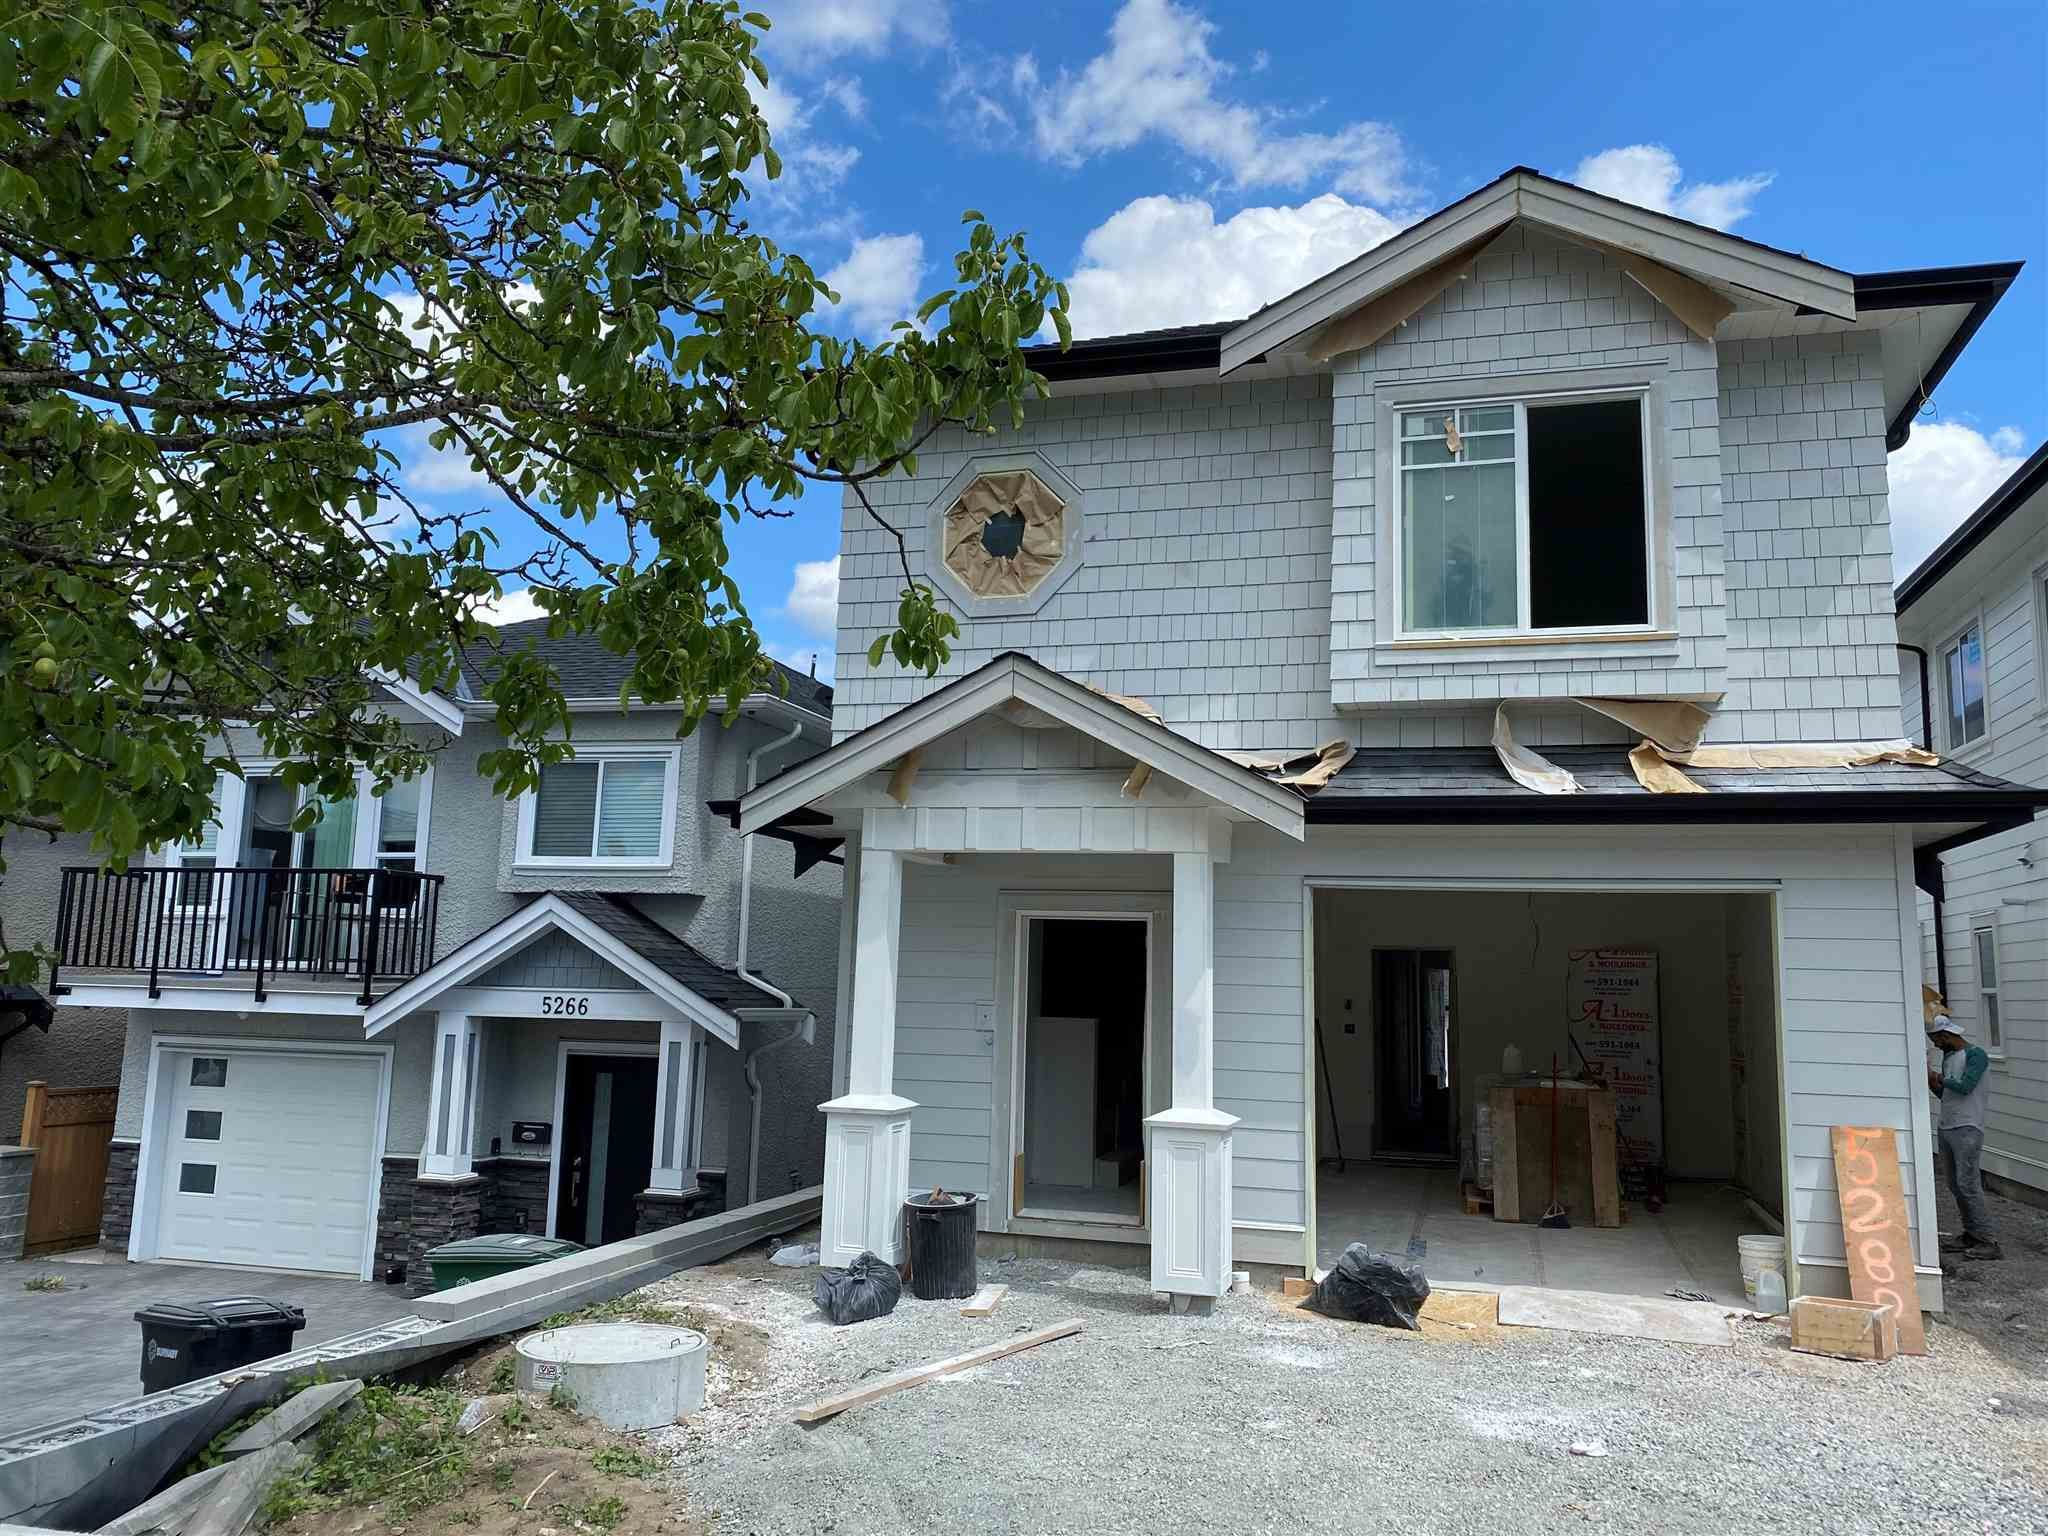 Main Photo: 5280 BARKER Avenue in Burnaby: Central Park BS House for sale (Burnaby South)  : MLS®# R2601179